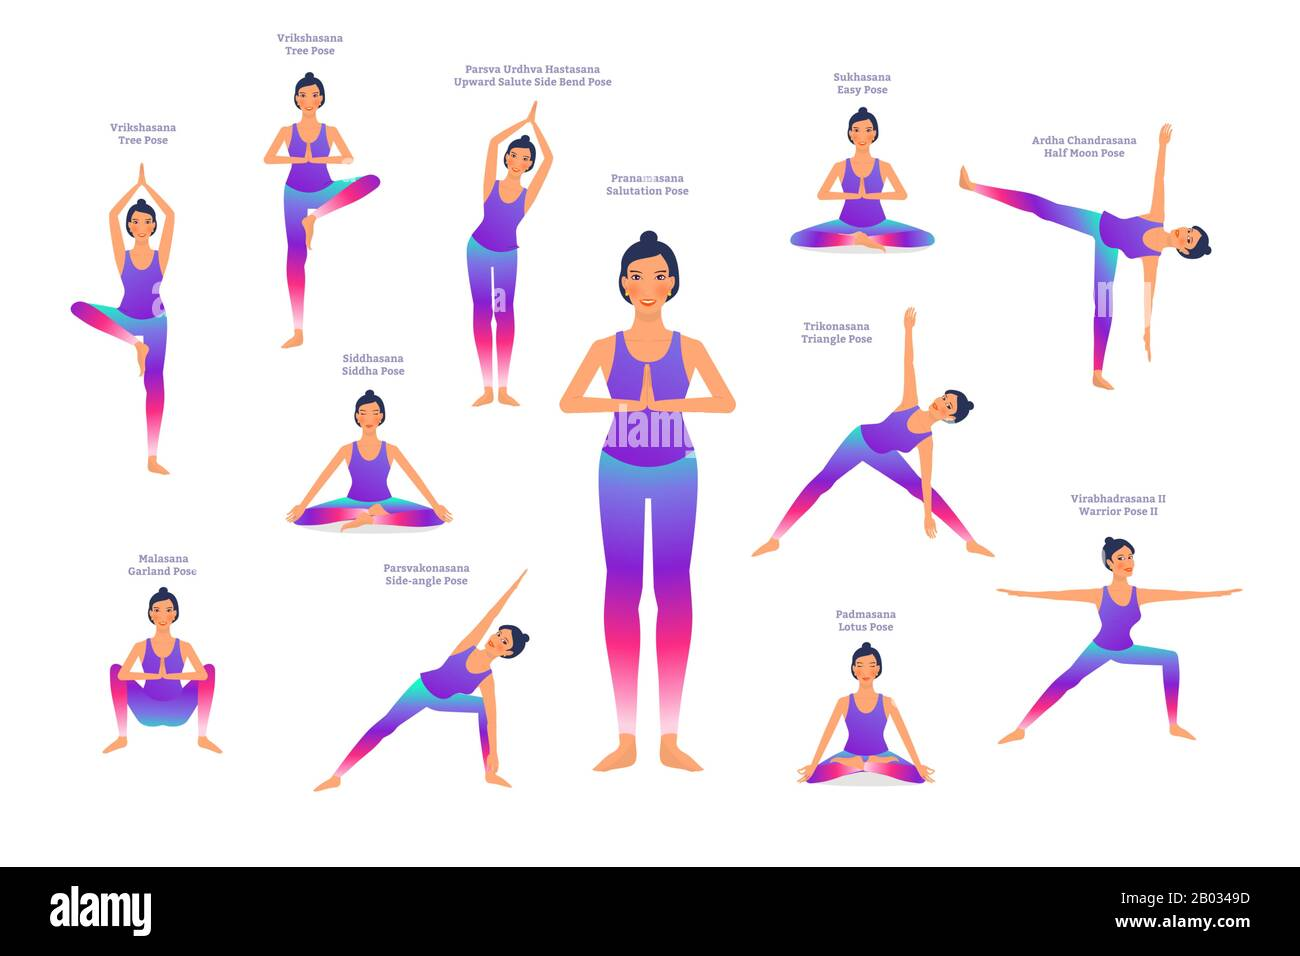 Yoga Poses Names In English